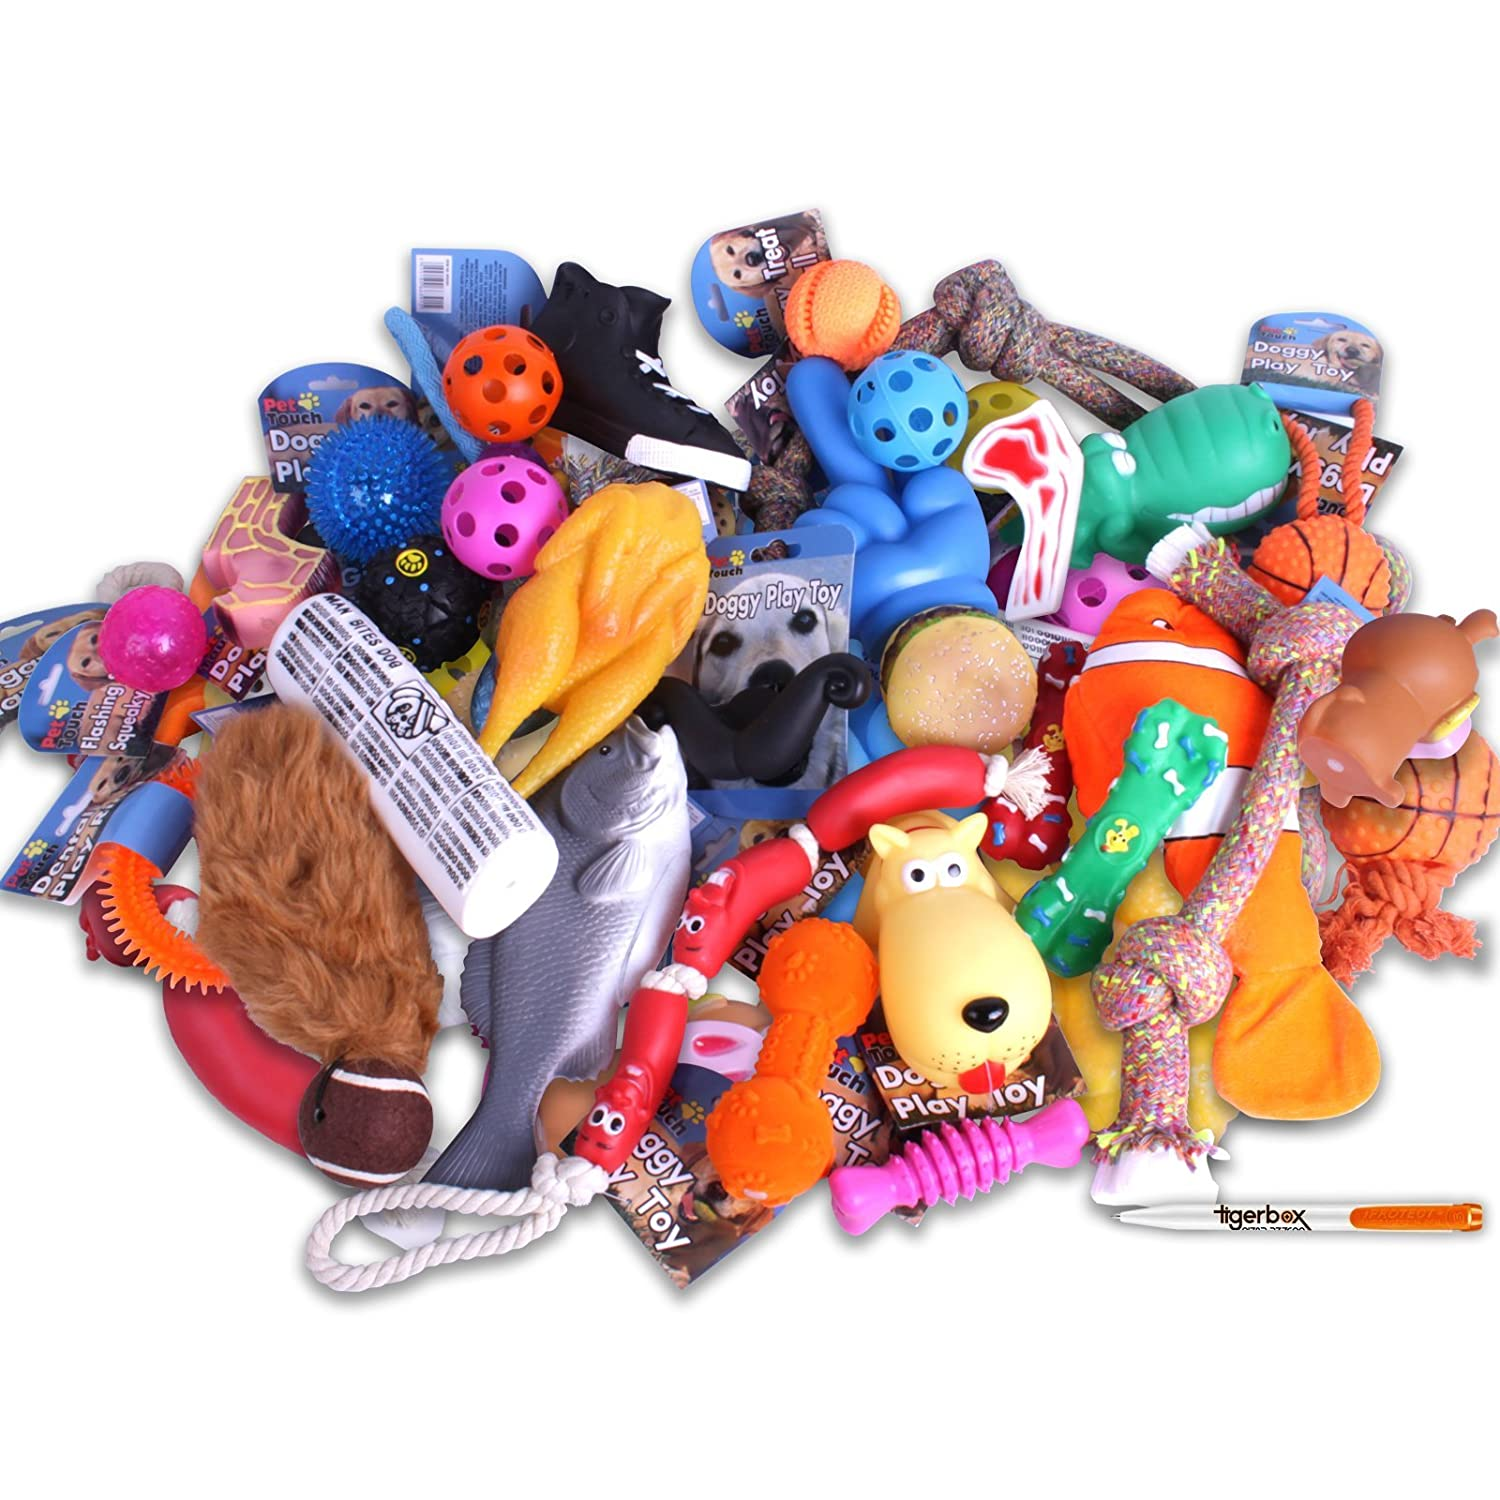 XL Pack 50 Dog Toys Tigerbox XL Value Fun Pack 50 x Pet DOG TOYS Bulk Assorted Squeaky Chew Rope Ball Rubber Fetch Play Toy Antibacterial Pen.